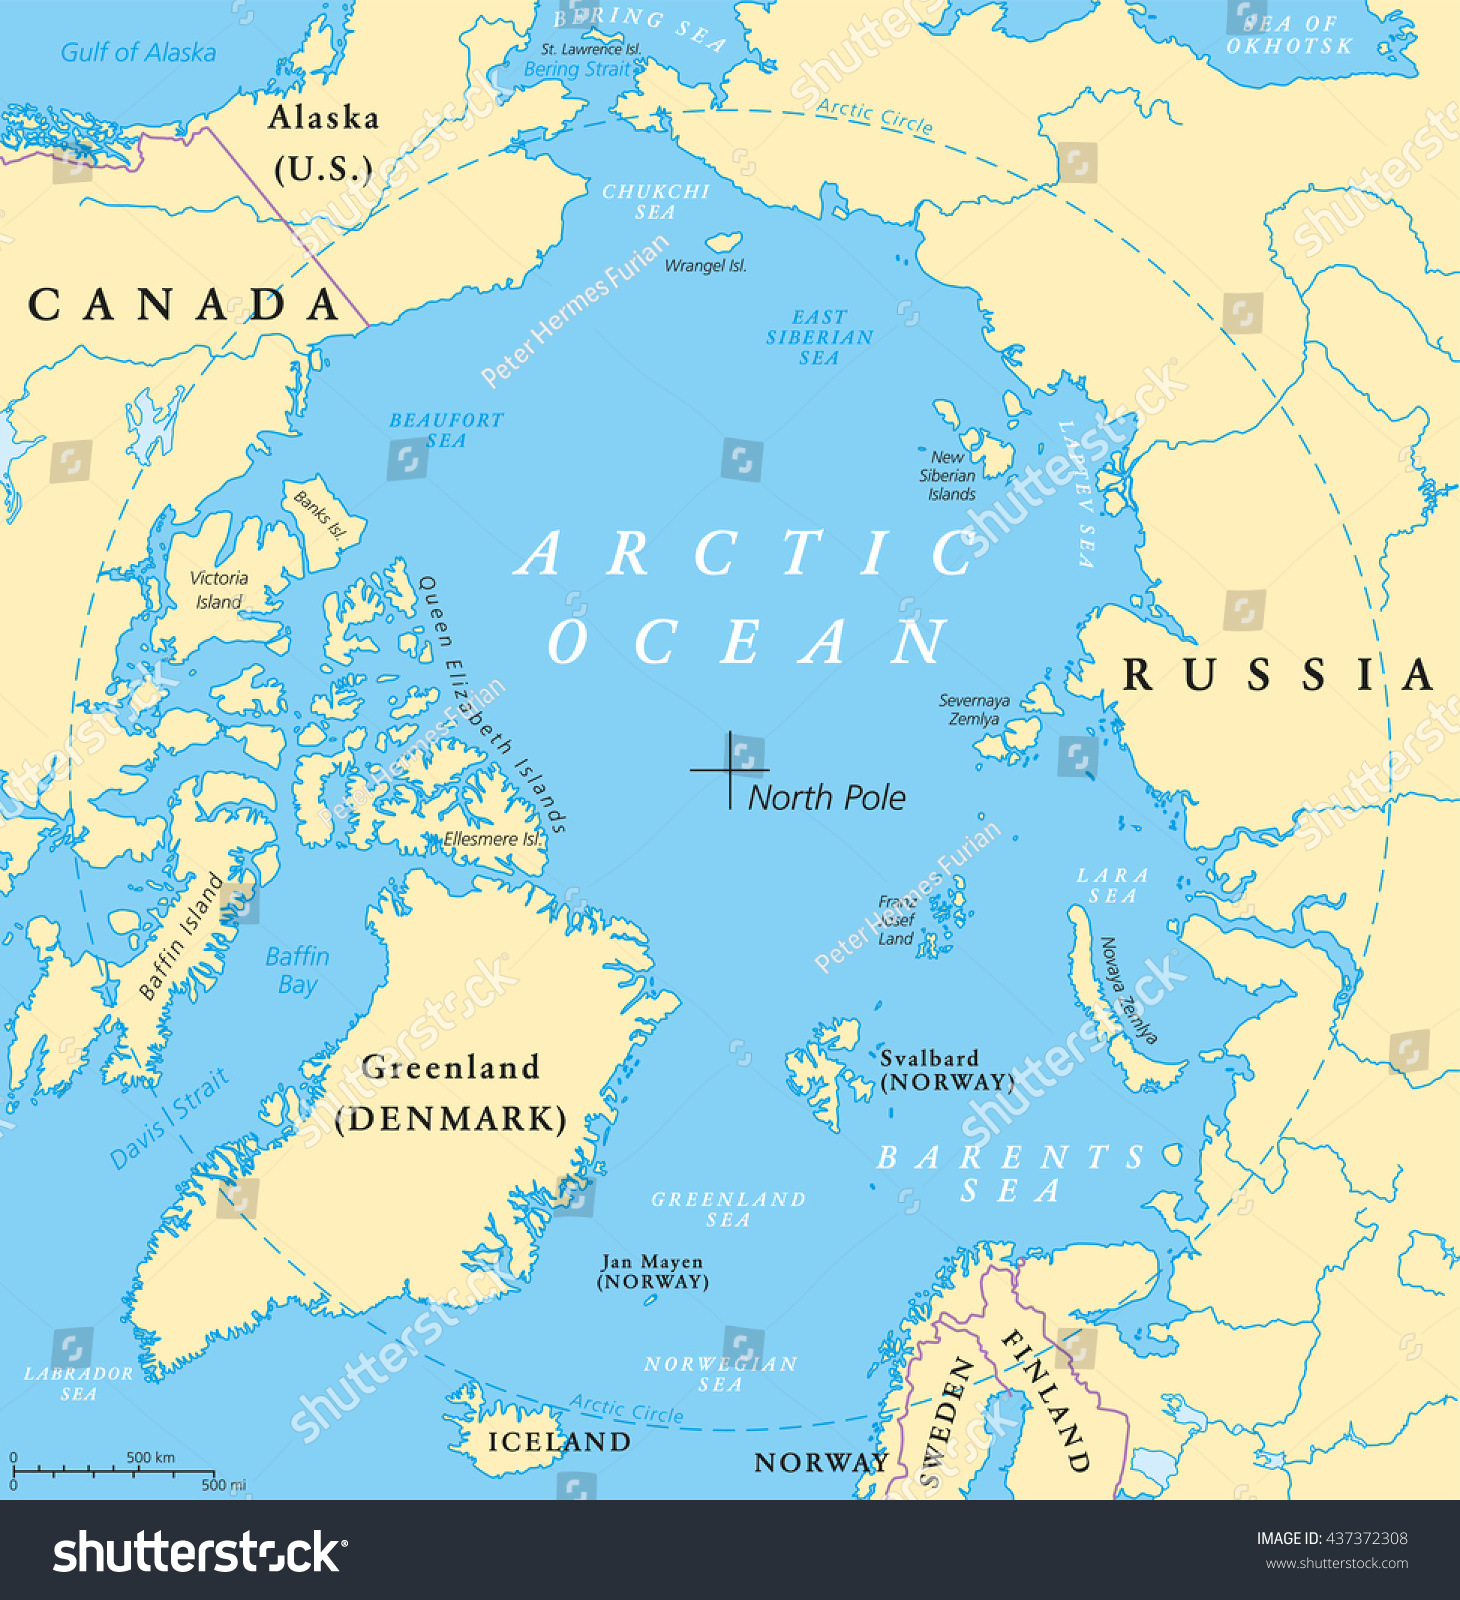 Arctic ocean map north pole arctic vector de stock437372308 arctic ocean map with north pole and arctic circle arctic region map with countries gumiabroncs Images